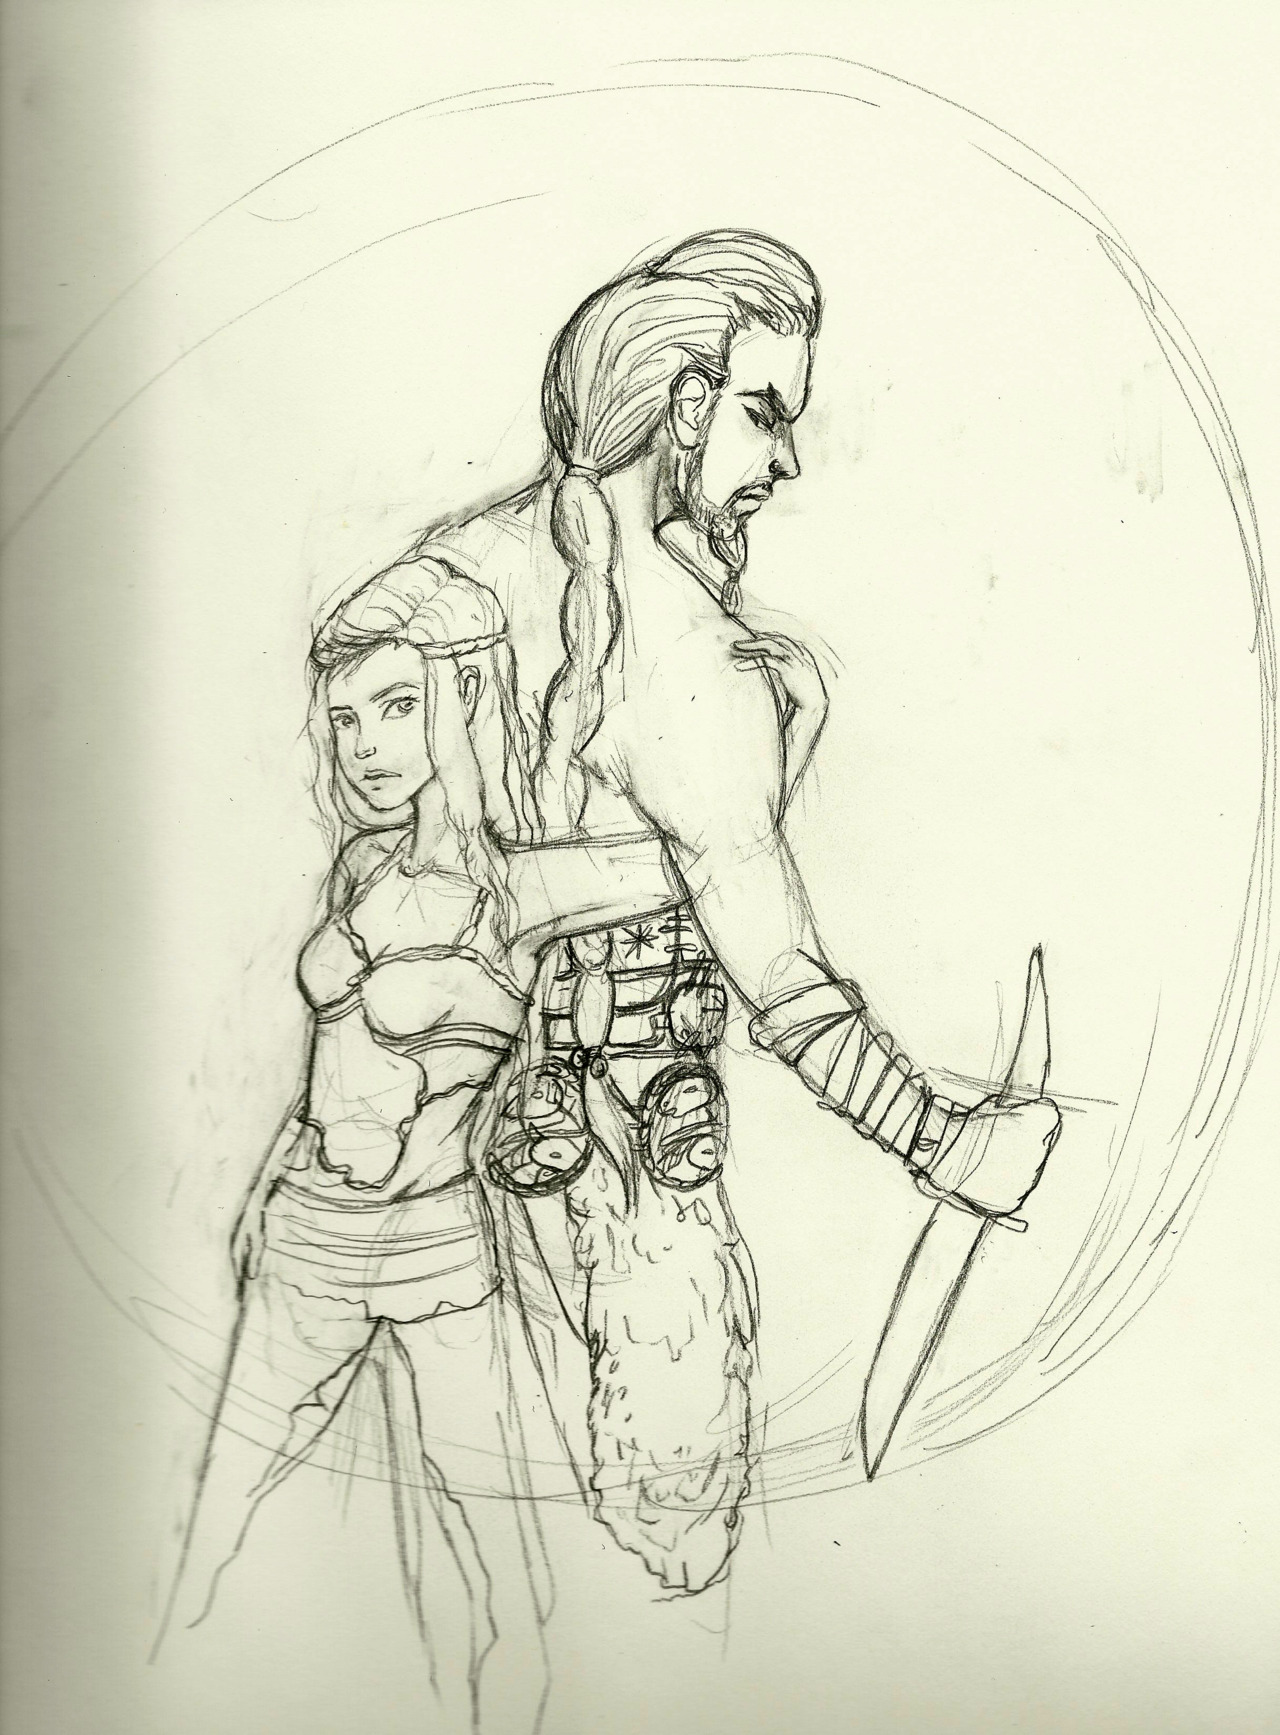 sketch of Khal Drogo and Daenerys Targaryen from Game of Thrones :D I read the first two before the show came out and I was hooked. I still need to get around to finishing A Dance with Dragons. I was inspired to draw these guys after I saw my friend Sara (ohmonah)'s sketches * o *